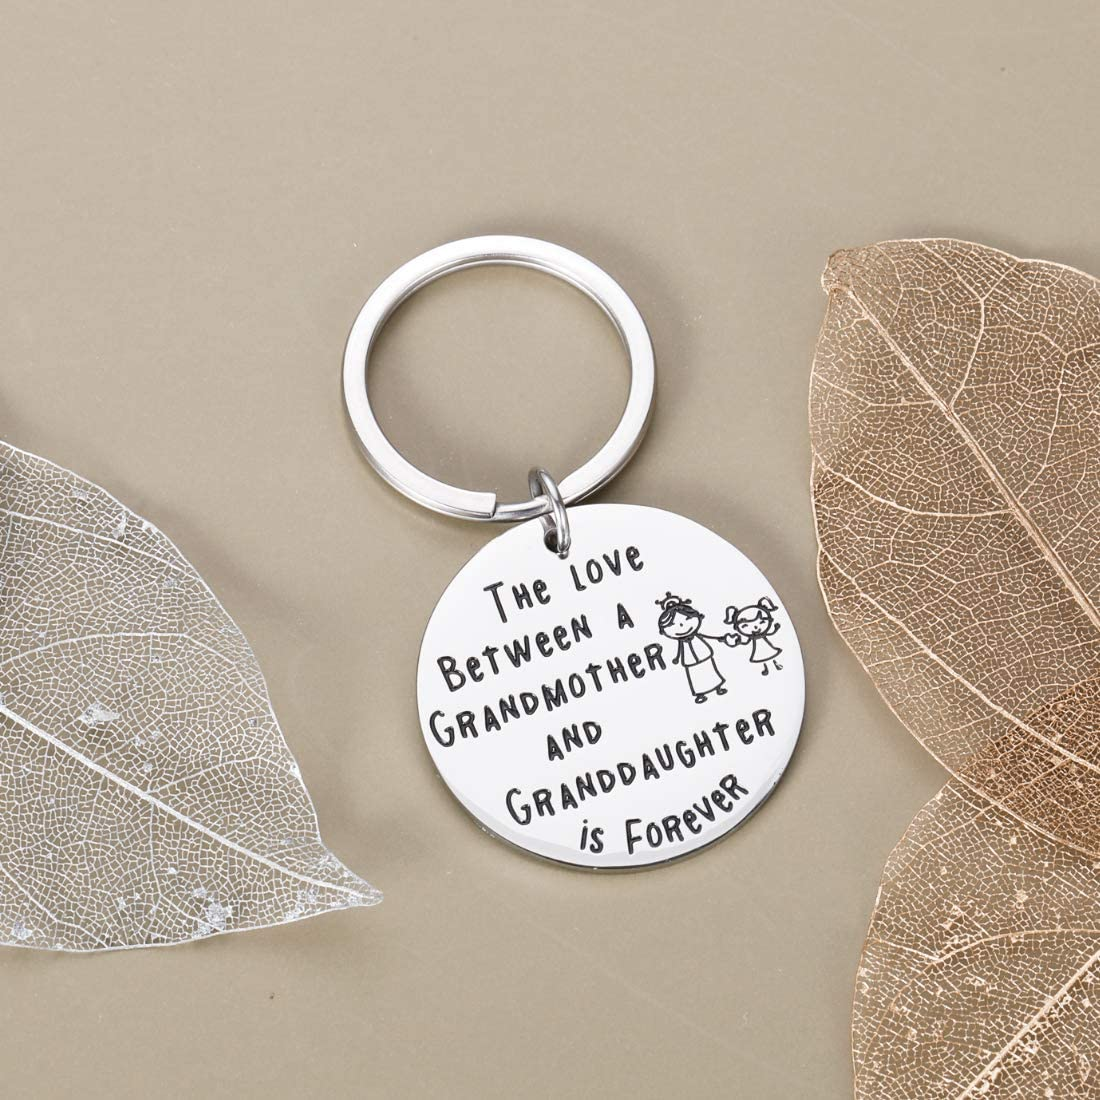 Grandma Gifts Keychain from Granddaughter Grandkids Baby Inspirational Jewelry Presents for Grandmother Mothers Family Birthday Thanksgiving Christmas Day